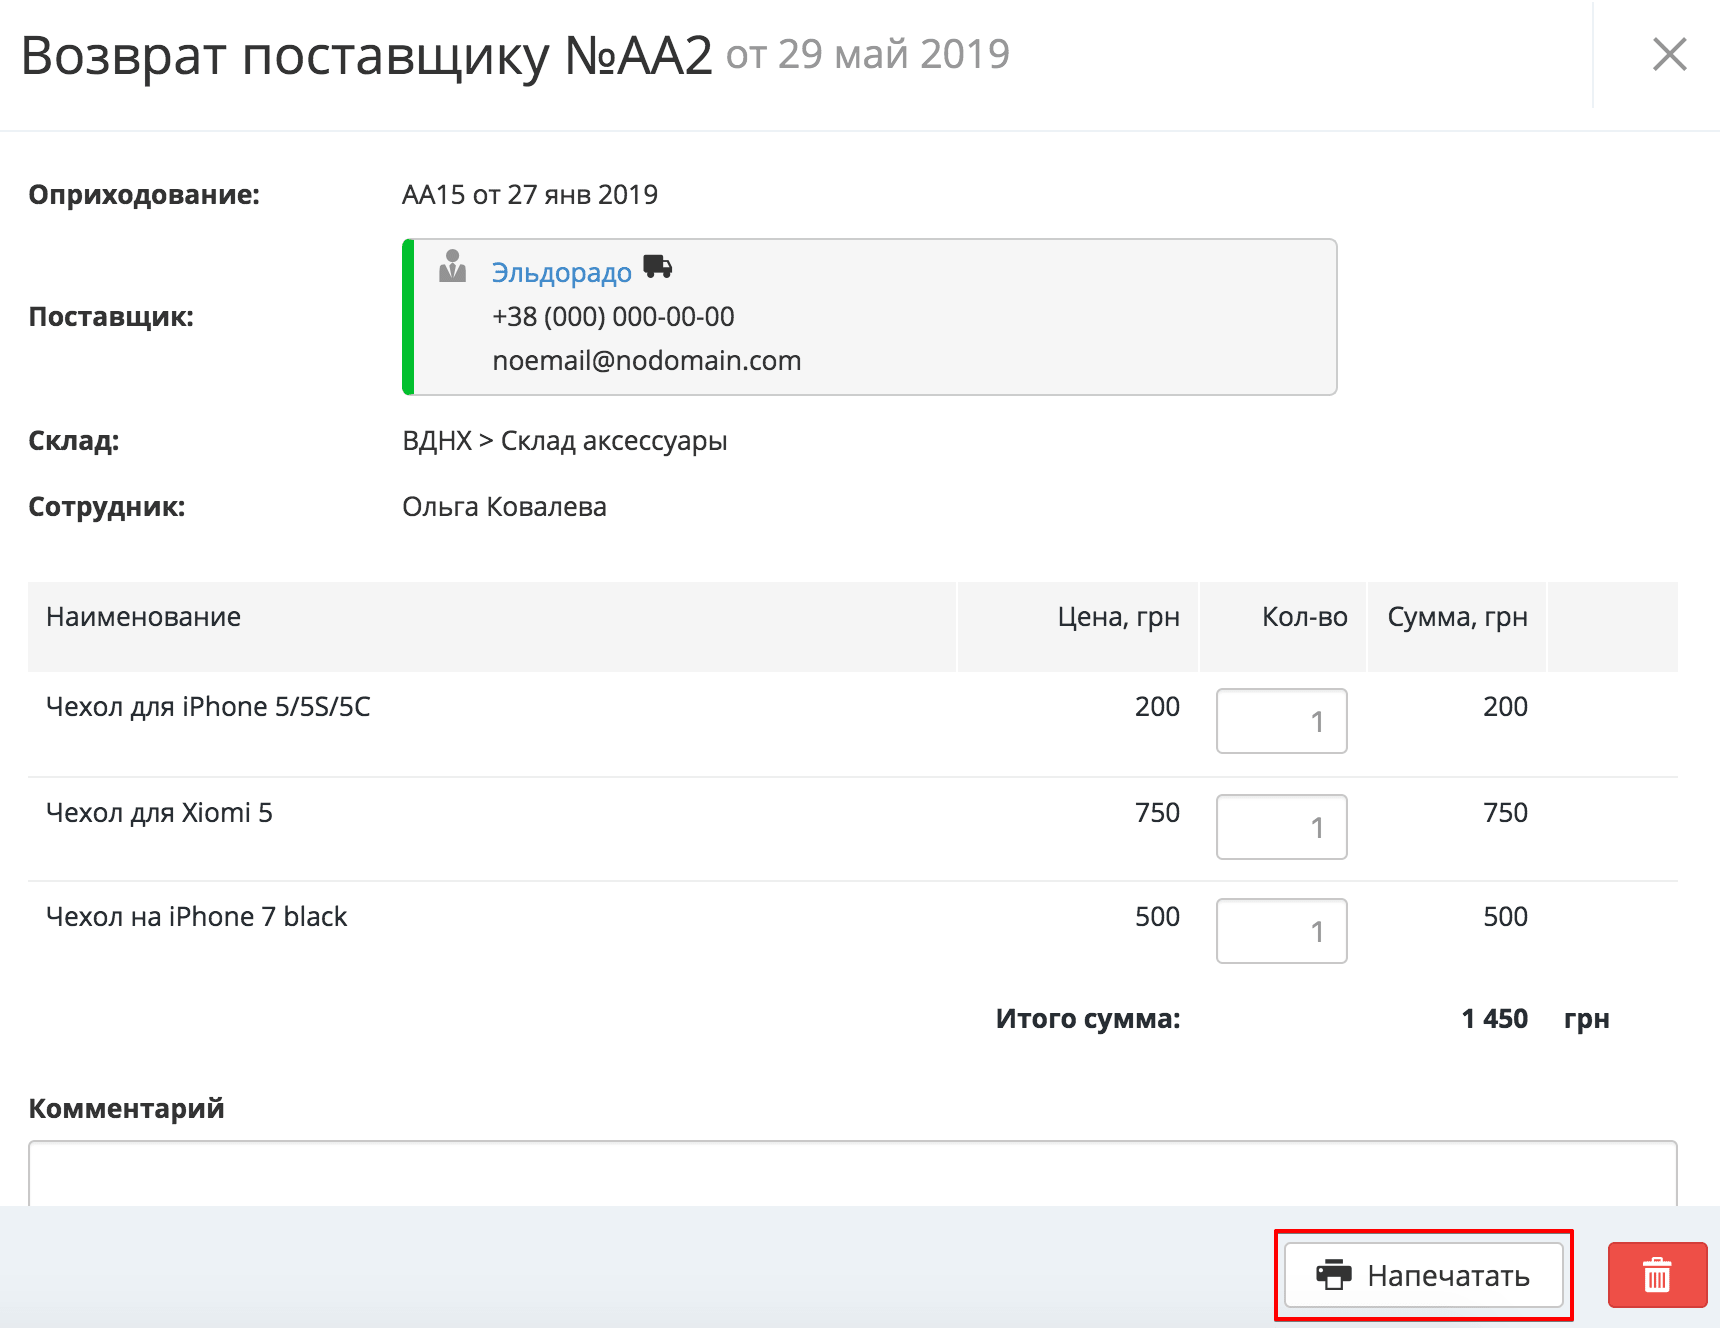 supplier-refund-doc.png (41 KB)